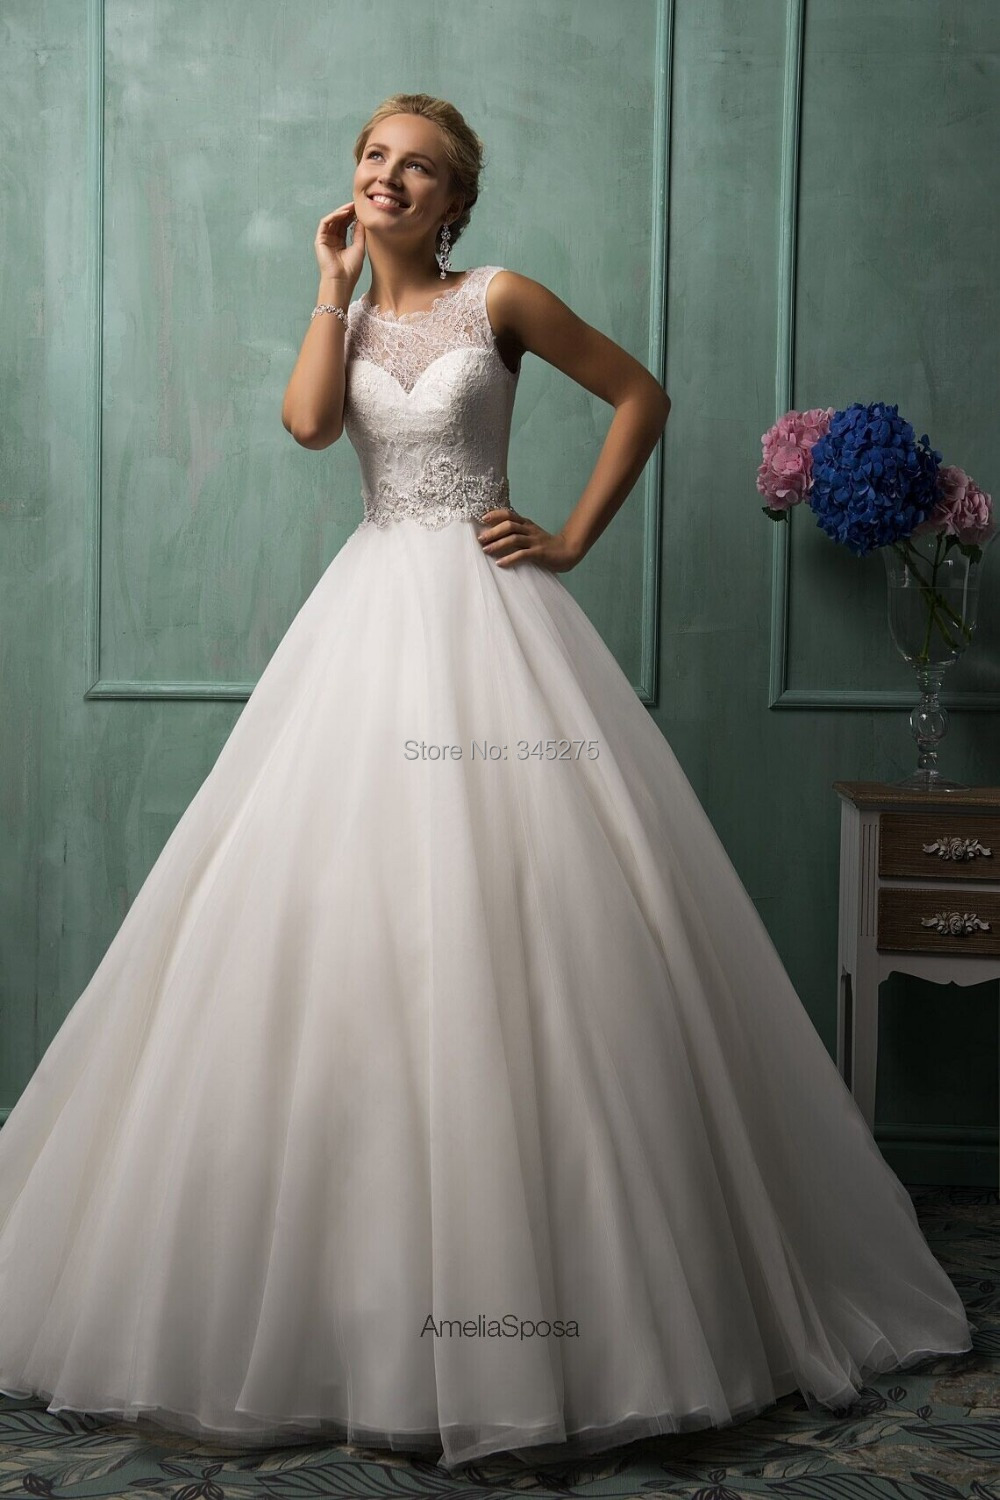 Designer Italy sheer illusion see though lace neckline and back free custom tulle wedding dress a line 2014 vestido de noiva(China (Mainland))